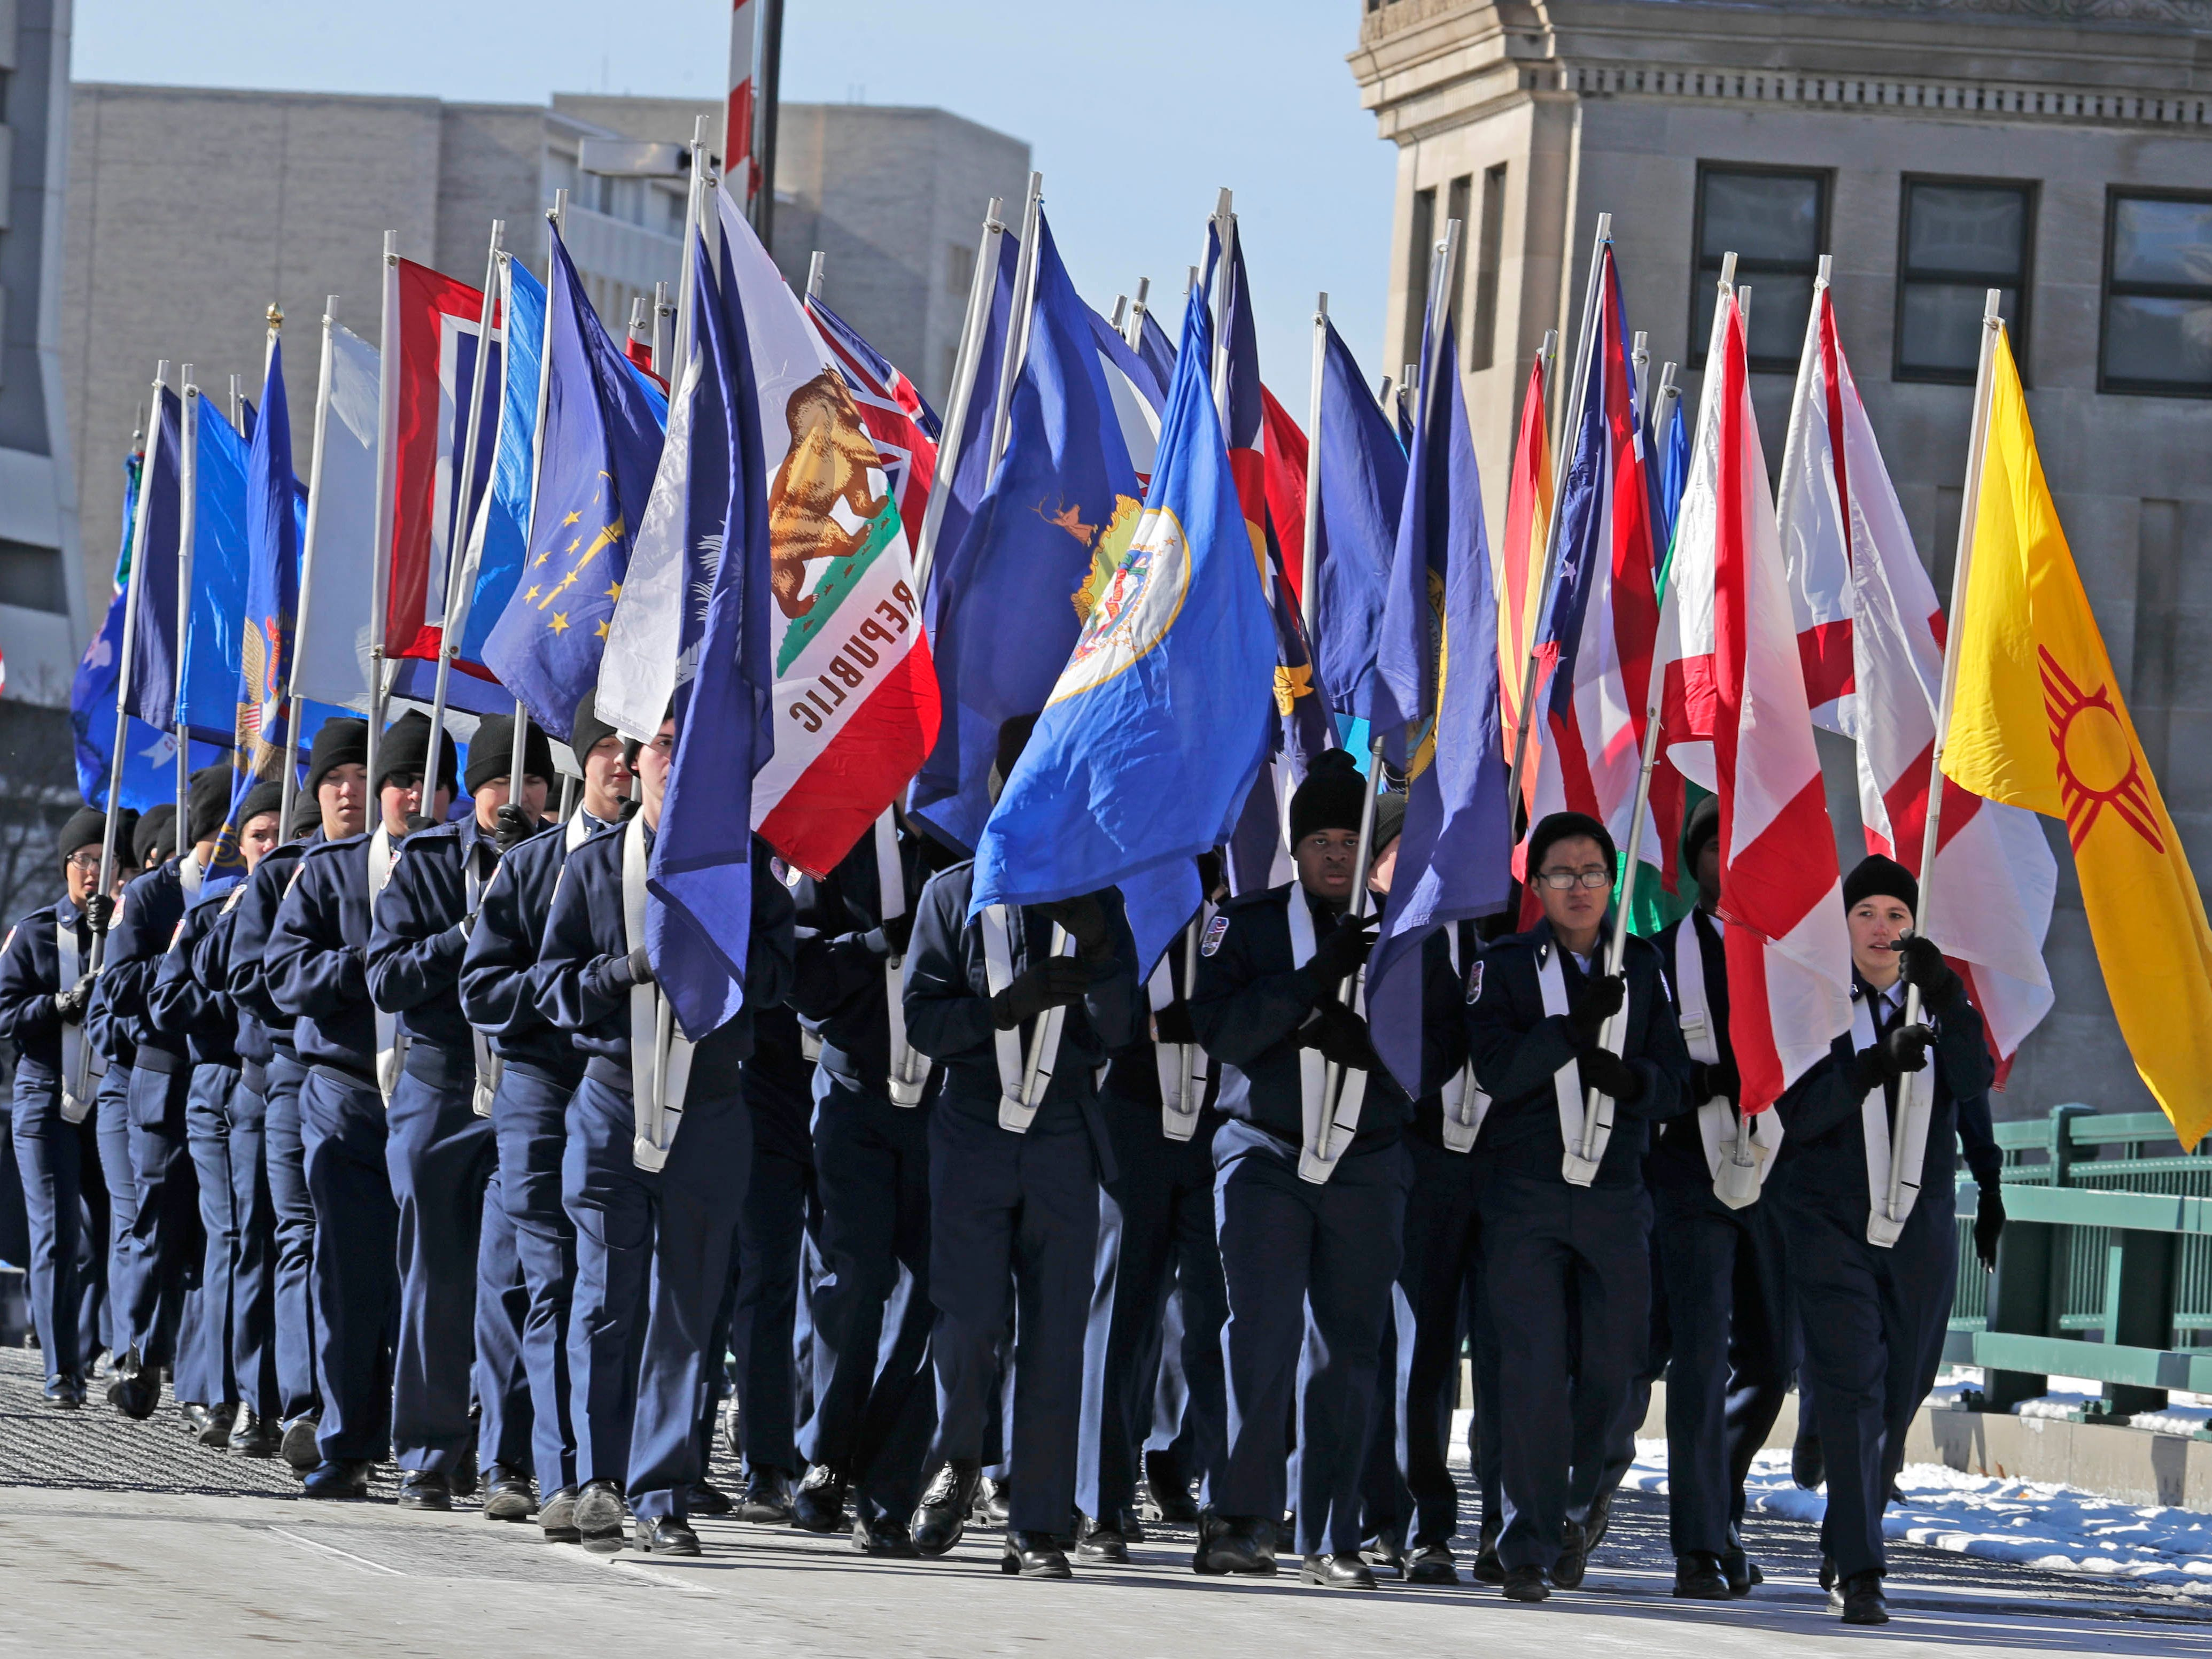 Students from the Greenfield High School JROTC program march along the parade route.